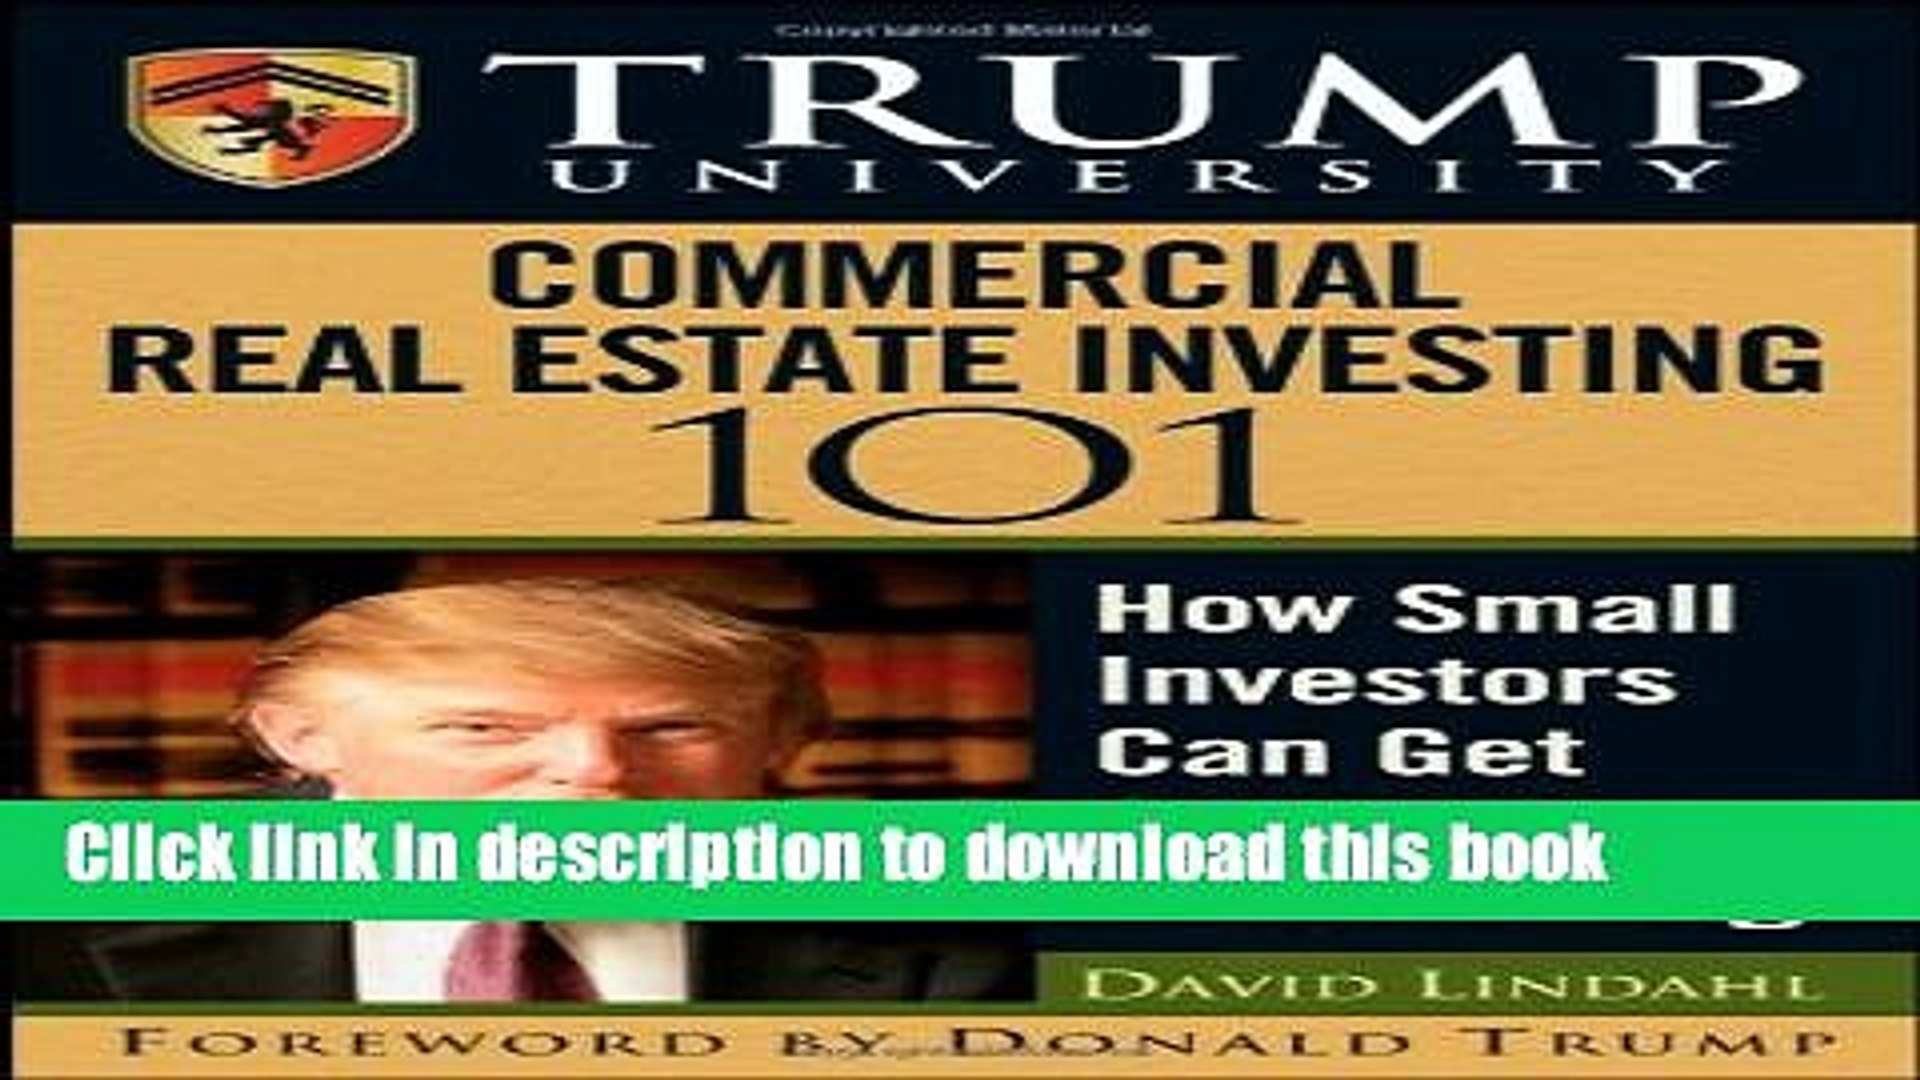 Books Trump University Commercial Real Estate 101: How Small Investors Can Get Started and Make It